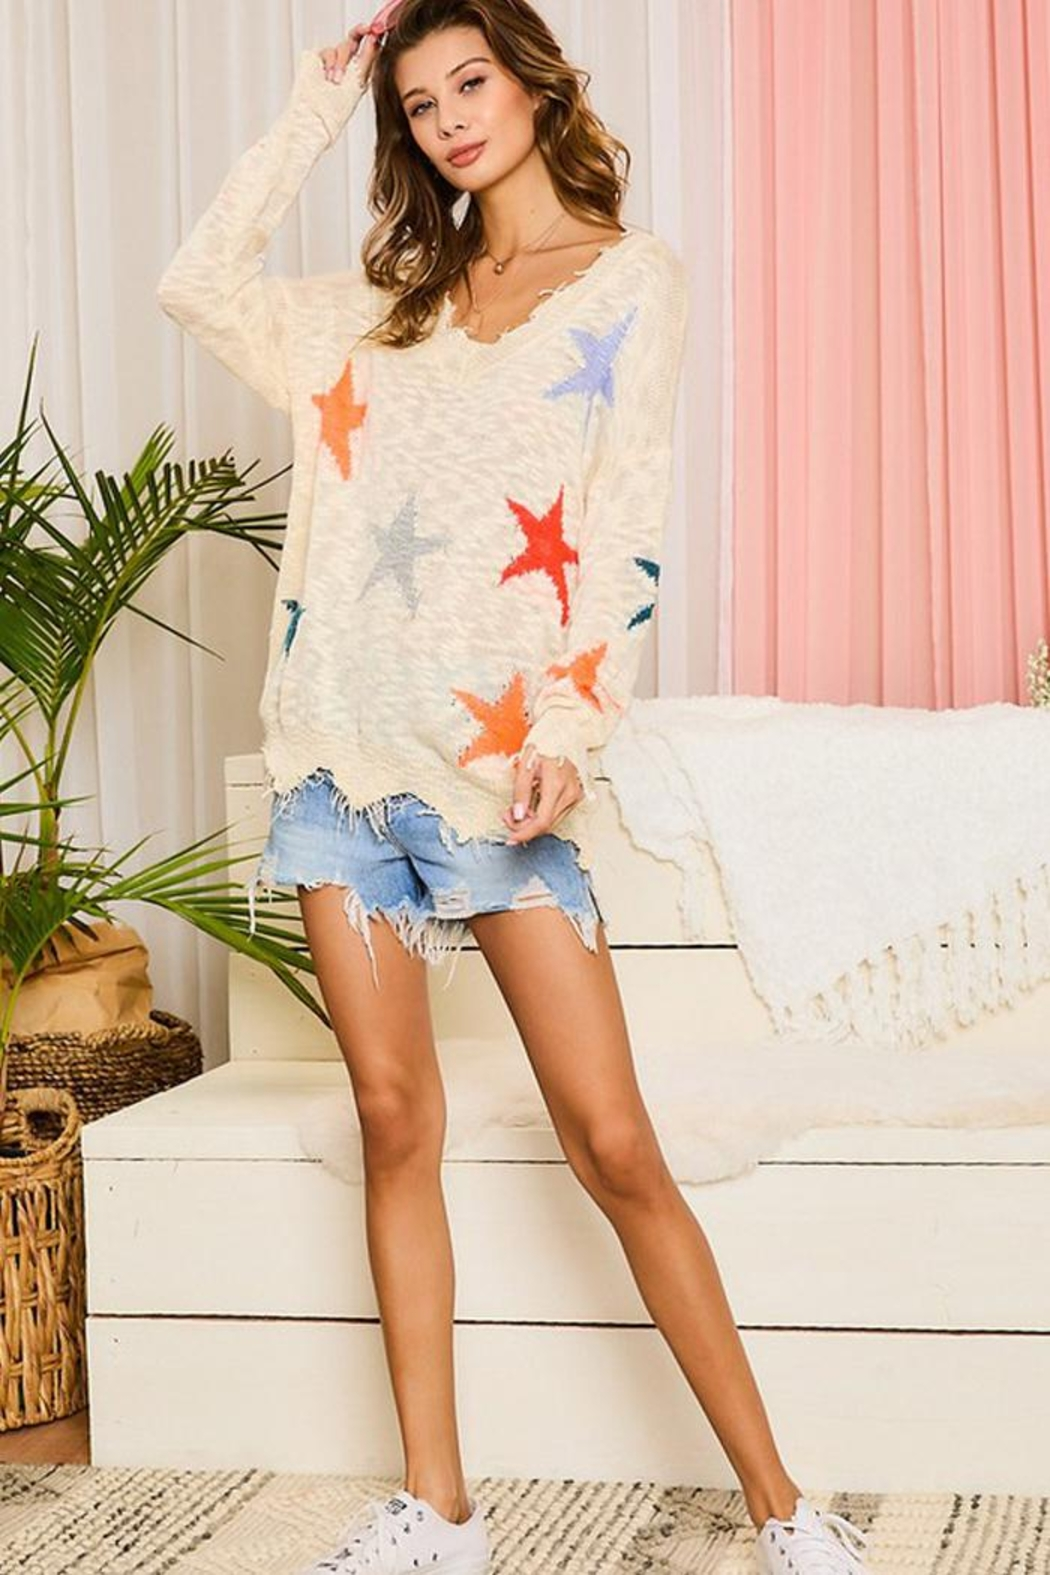 Main Strip Multicolor Star Distressed Detail Sweater Jumper Pullover - Front Full Image